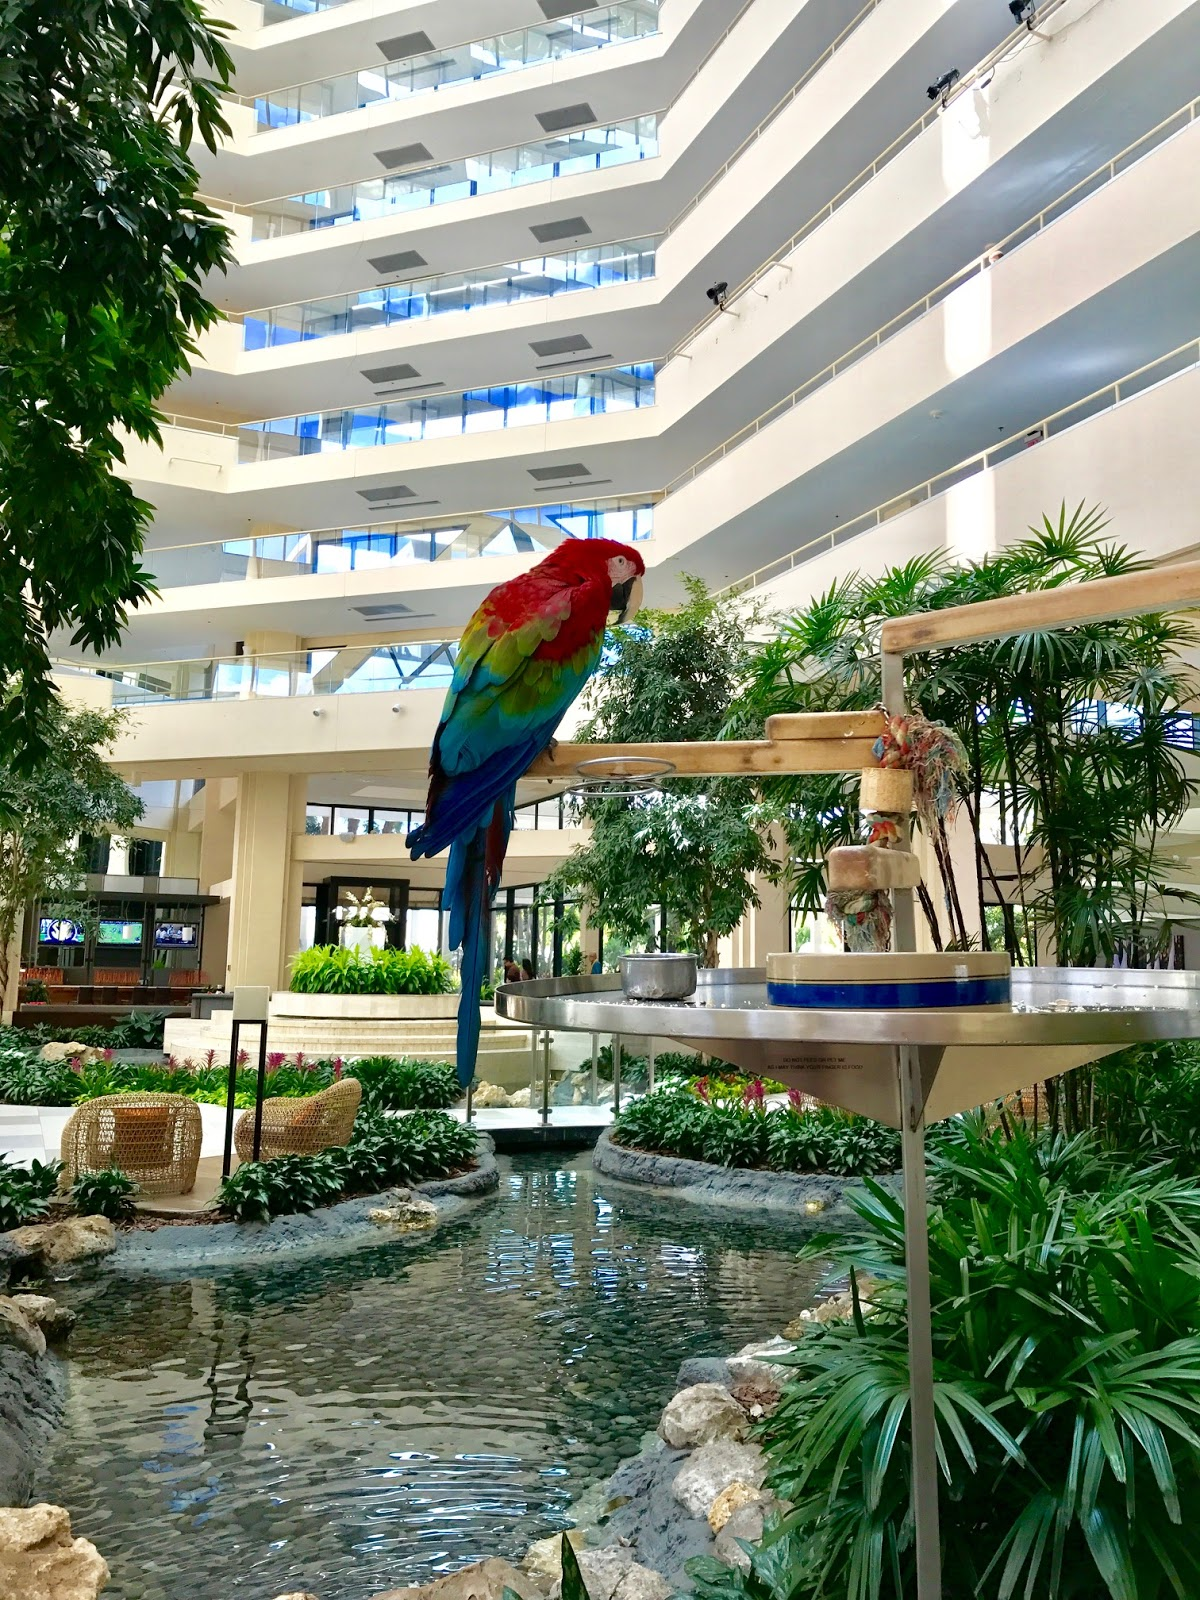 At Registration I Met Hyatt Regency Grand Cypress Ambador Merlot The Parrot Am Actually Terrified Of Birds So Didn T Get Too Close But He Was Very